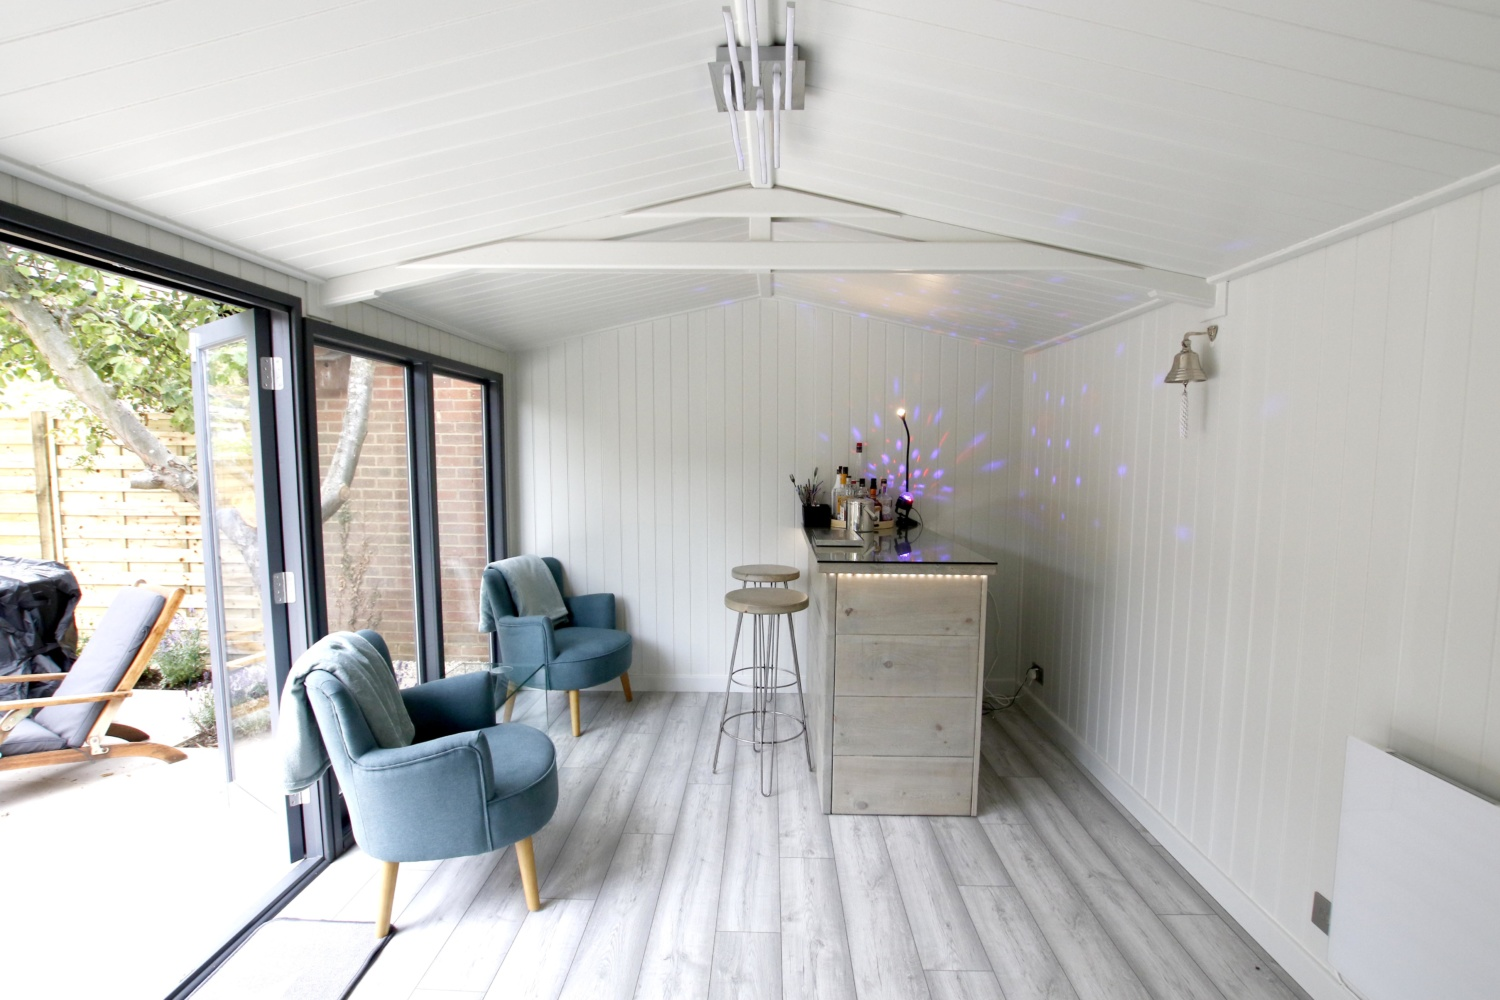 The interior of a wooden garden room, light and bright with two armchairs and a wooden bar and stool set. there are multicoloured disco lights